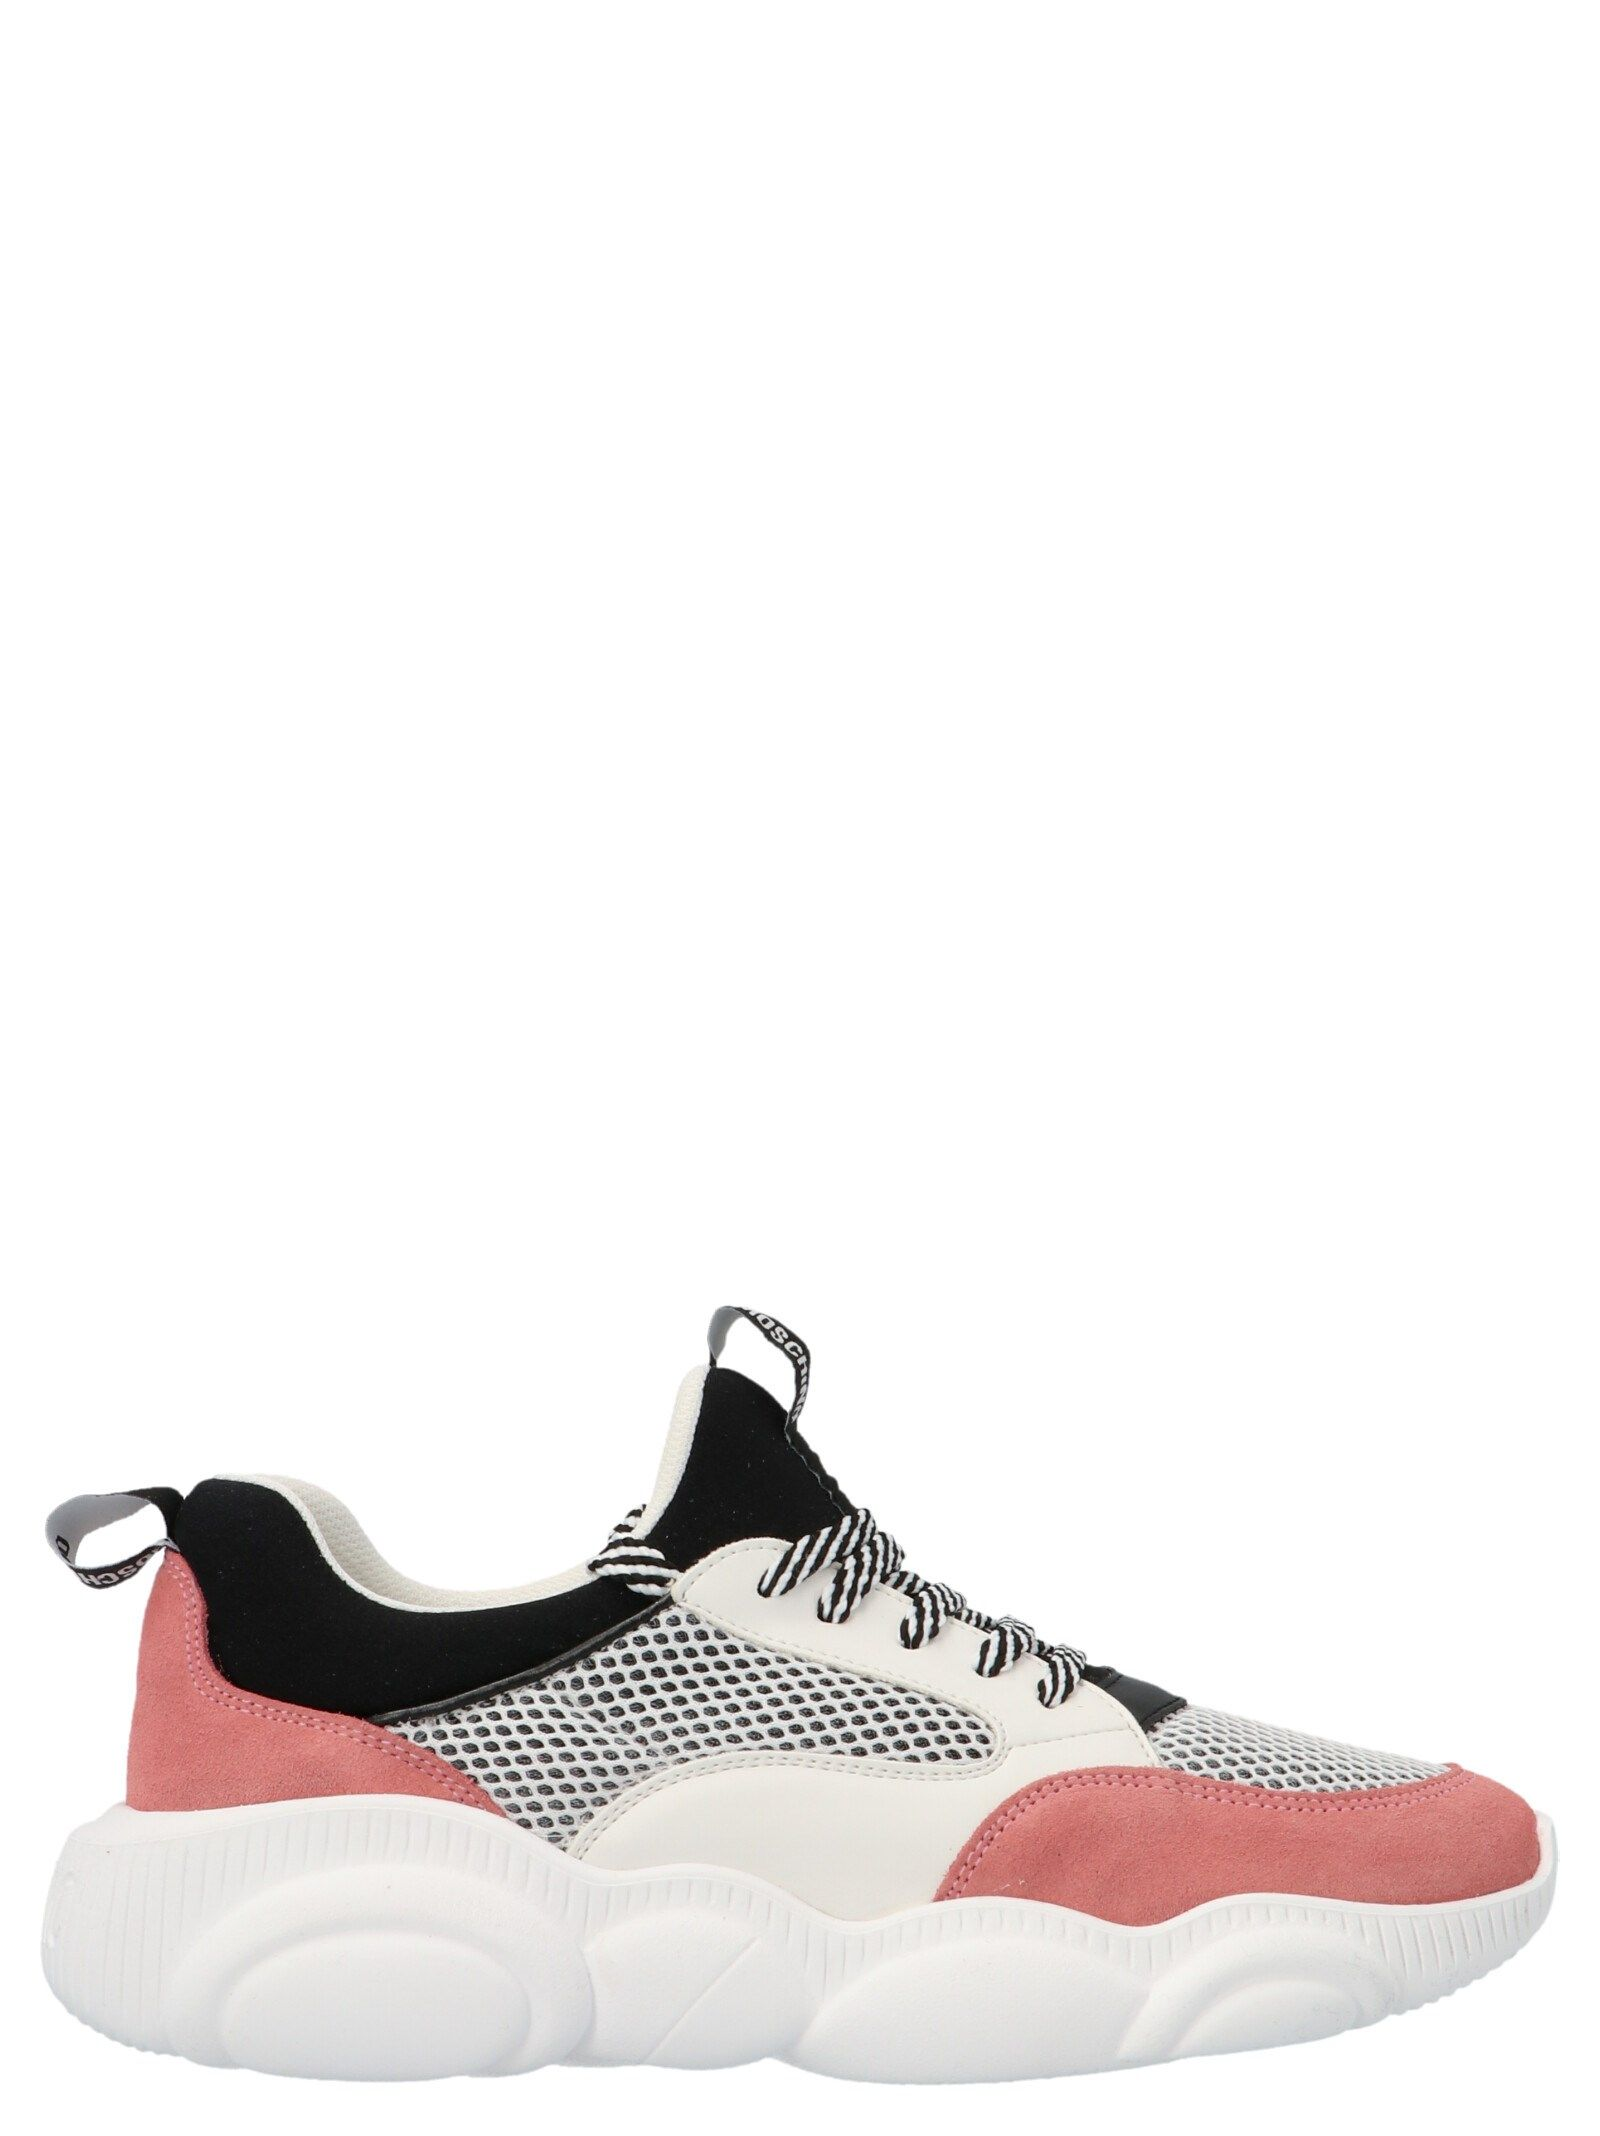 Moschino Leathers MOSCHINO WOMEN'S MULTICOLOR OTHER MATERIALS SNEAKERS